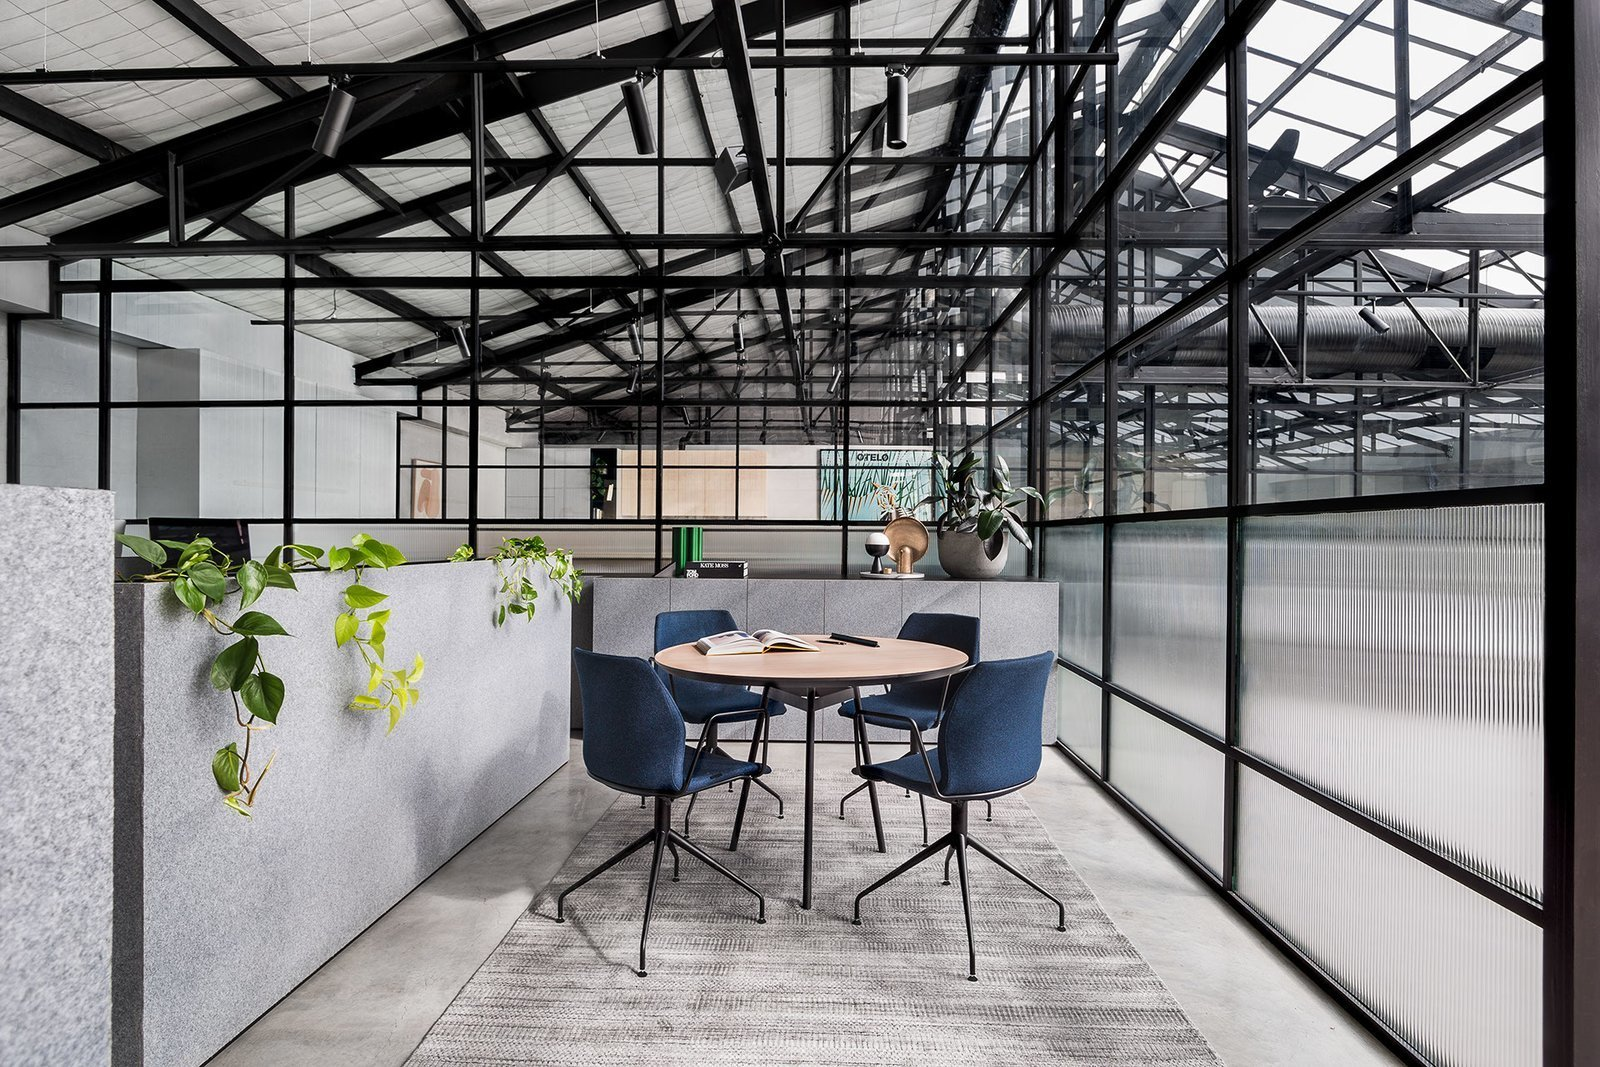 Office, Study Room Type, Chair, Storage, Rug Floor, and Concrete Floor  Photo 4 of 14 in An Art Deco Warehouse in Melbourne Is Converted Into a Shared Office Space